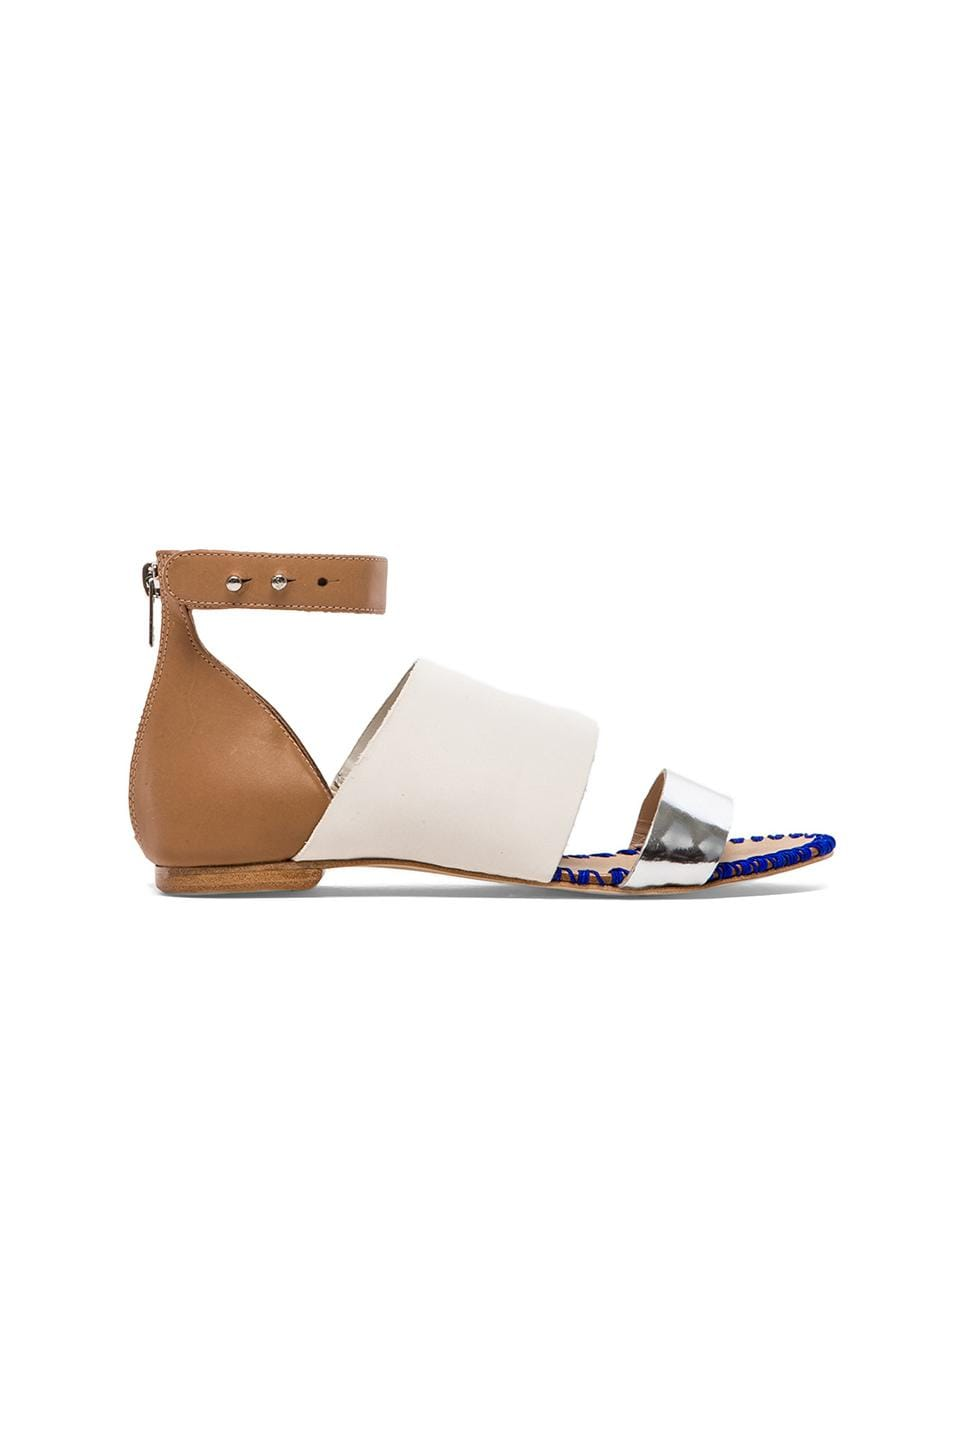 Loeffler Randall Minna Sandal in White & Buff